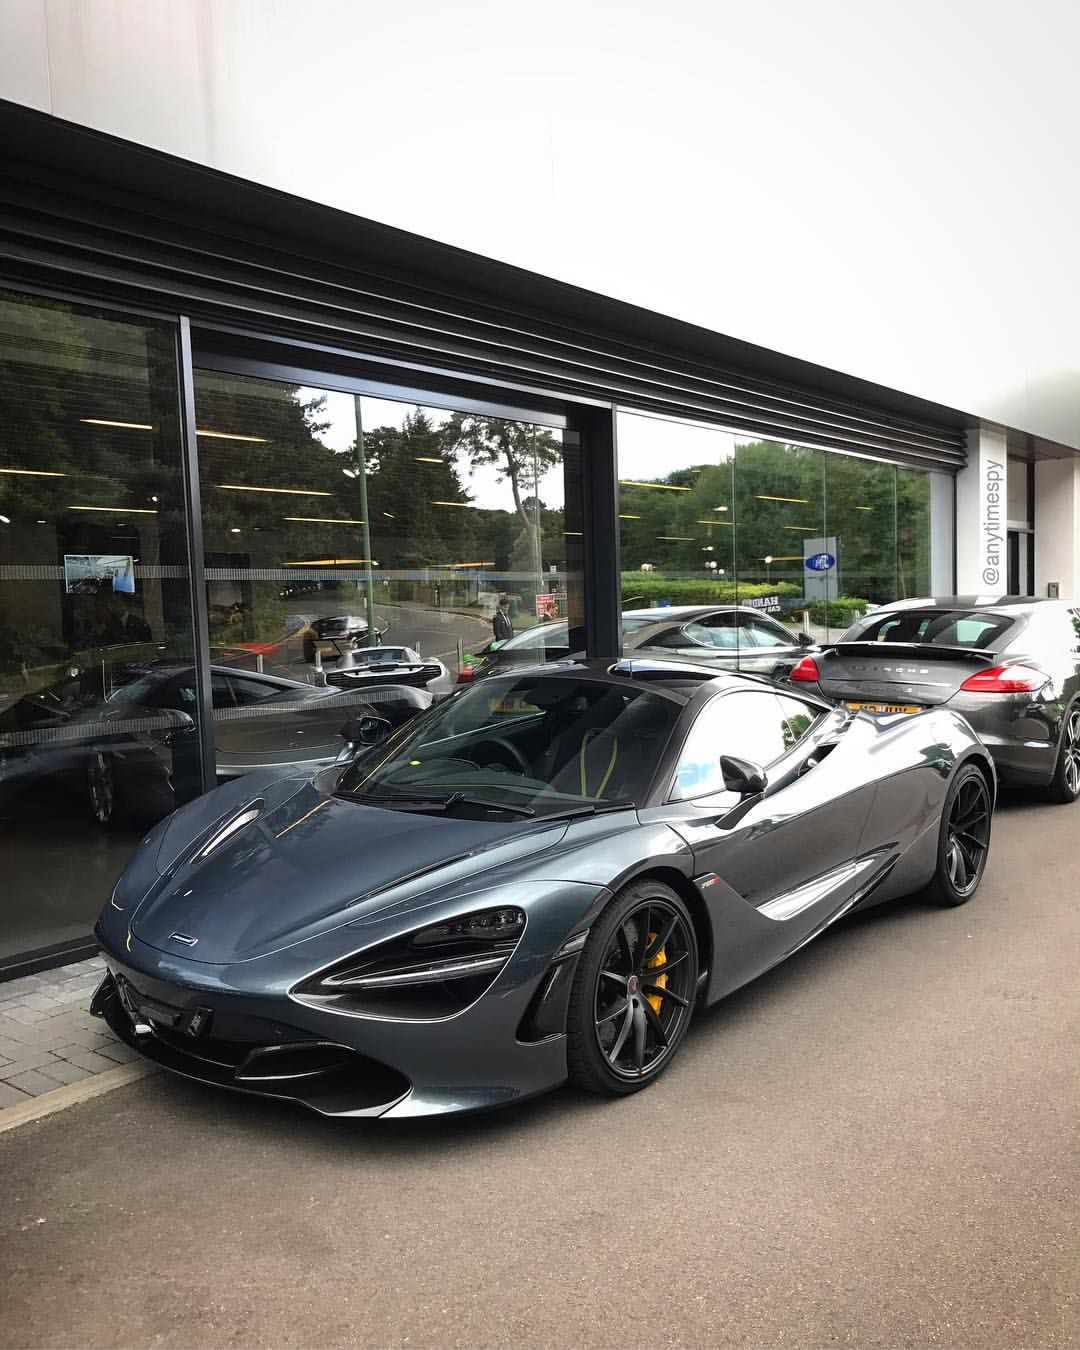 pinmichele noh on dream cars | pinterest | cars, super cars and